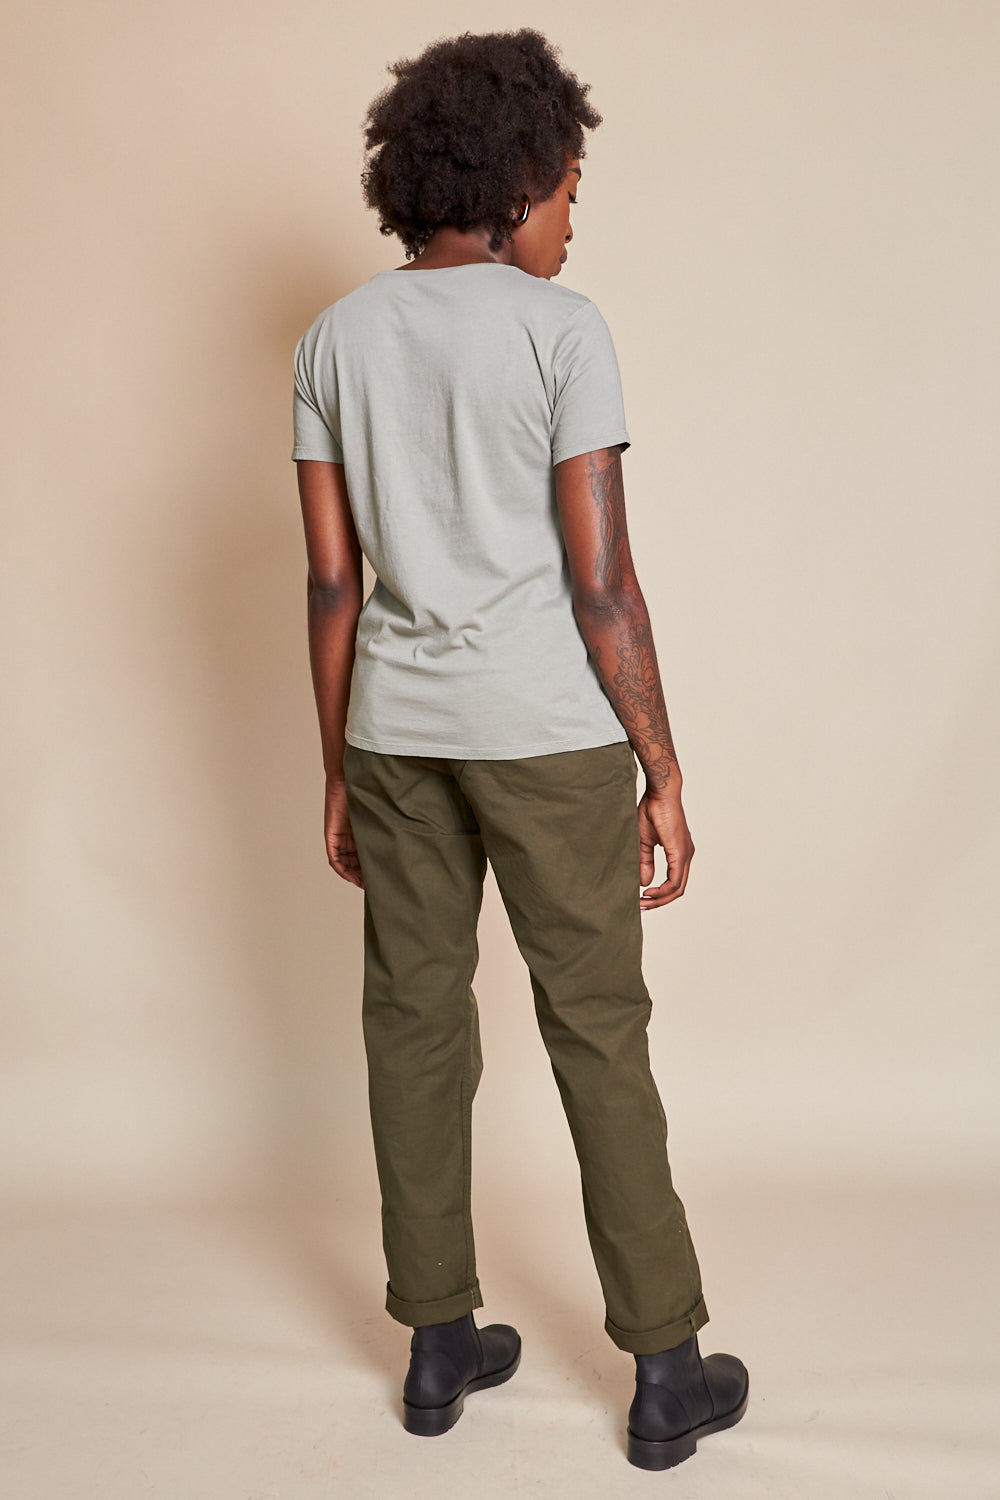 Save Khaki United Twill Easy Chino in Olive - Vert & Vogue